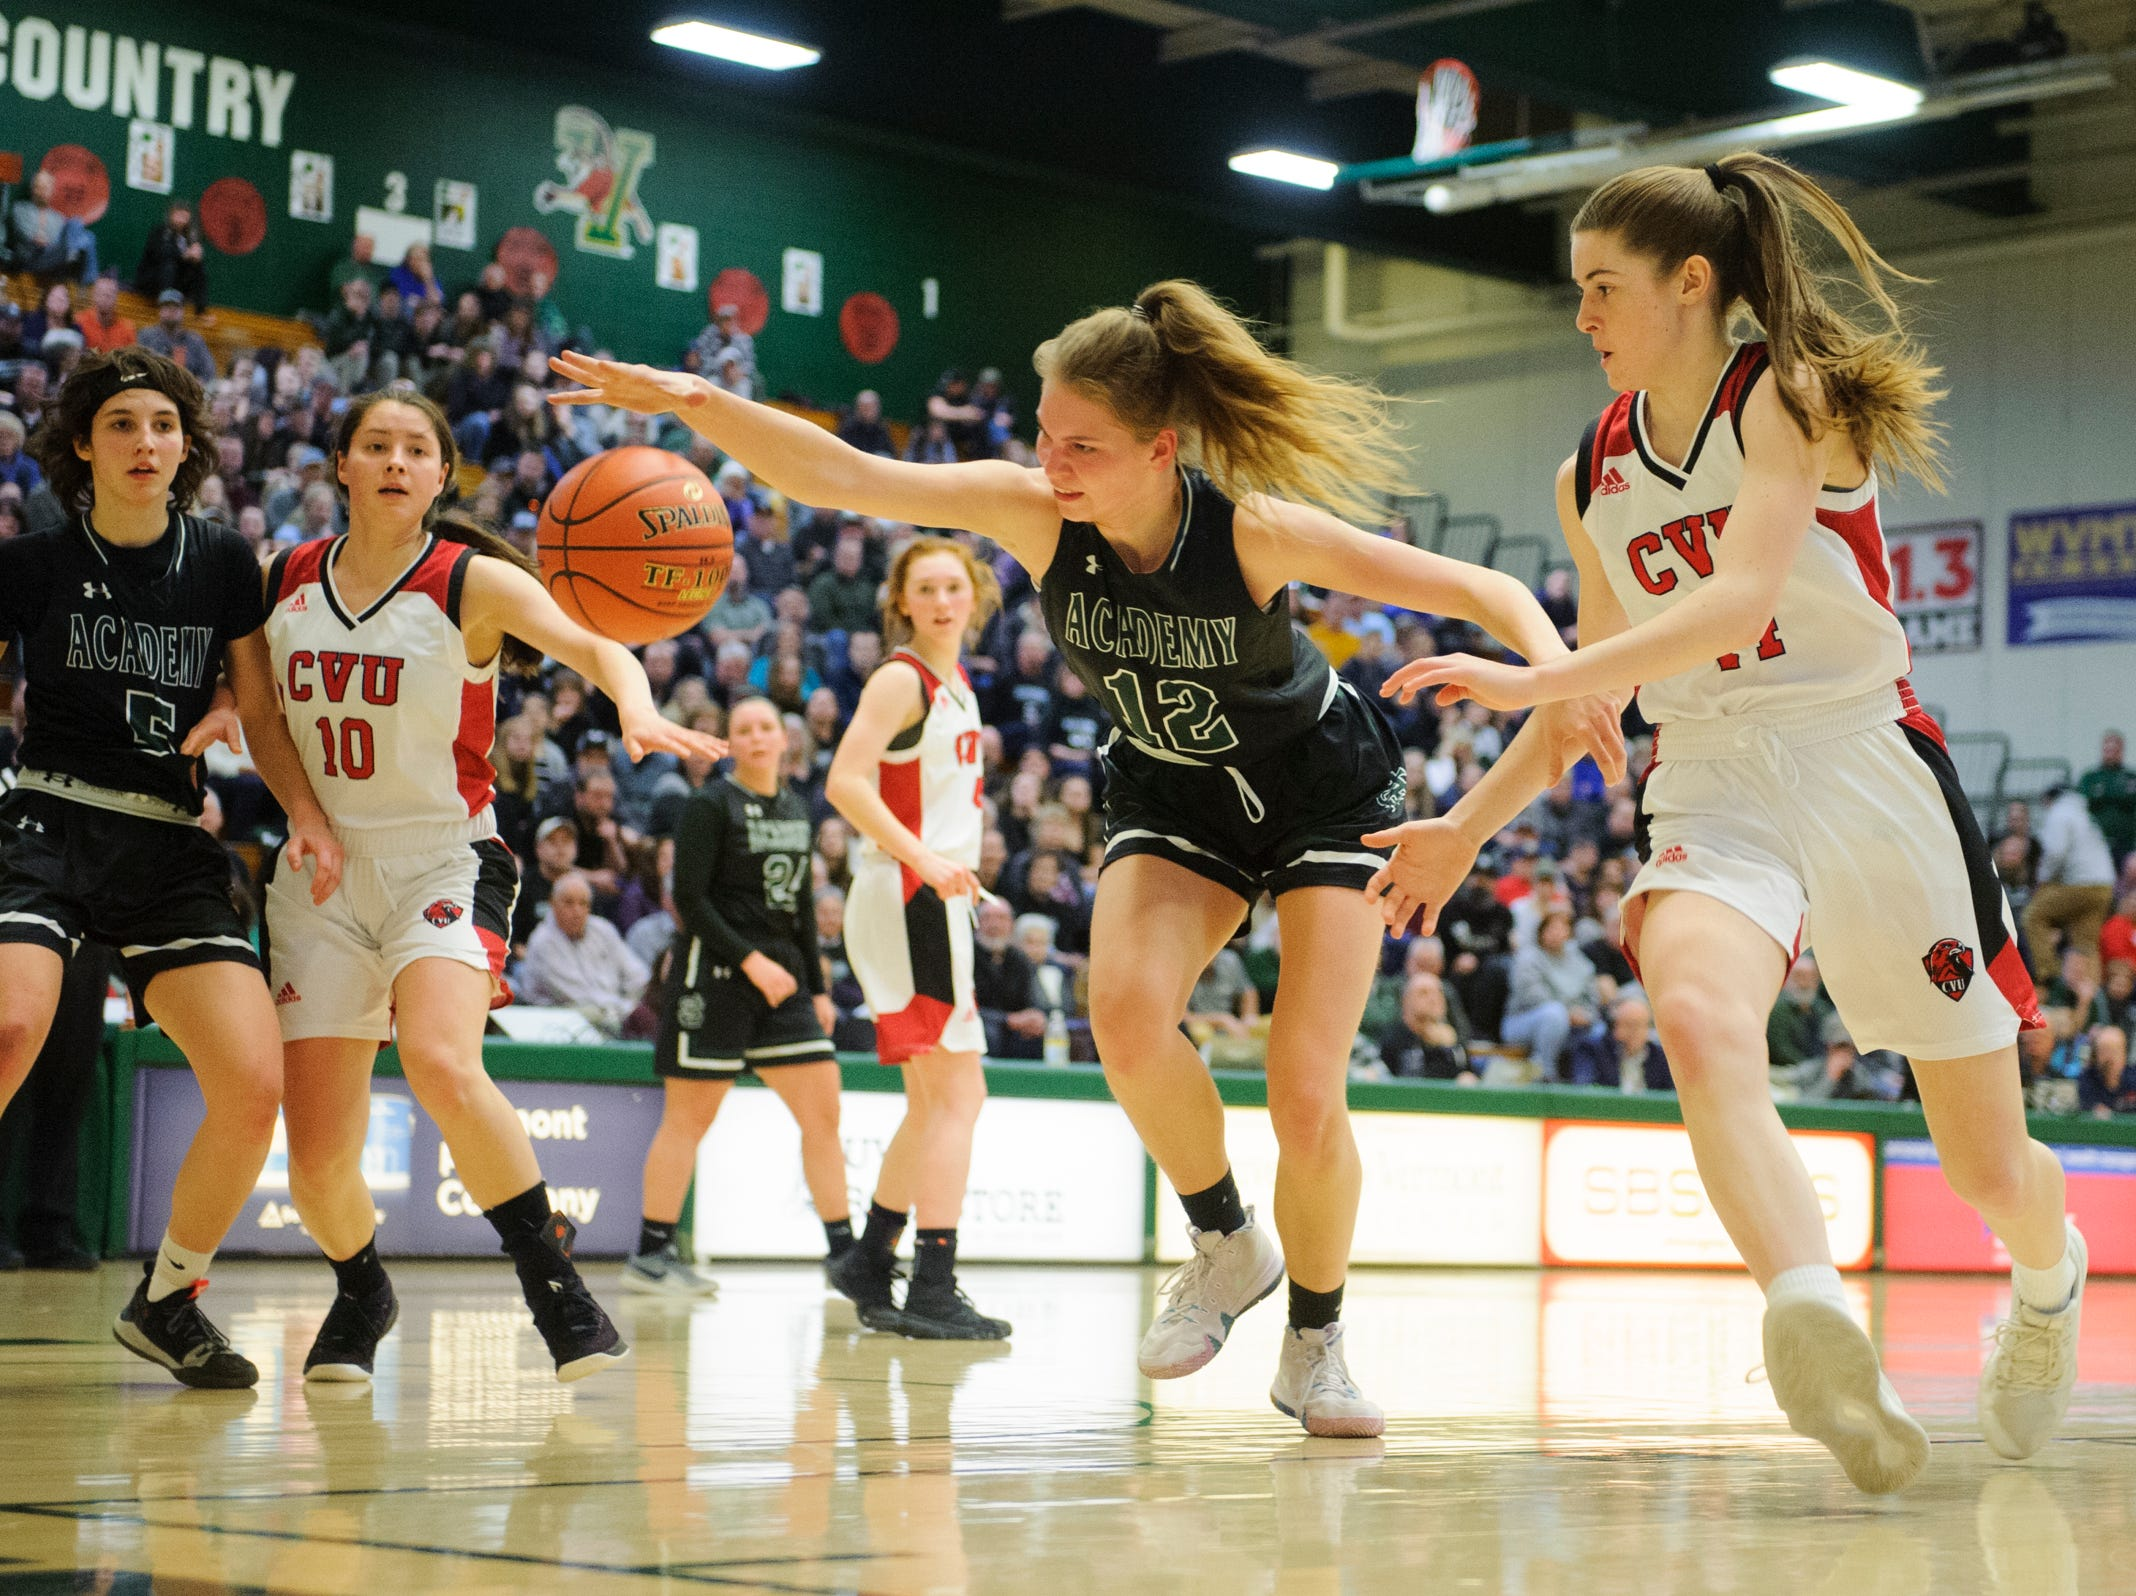 St. Johnsbury's Lara Rohkohl (12) battles for the loose ball with CVU's Julia Blanck (14) during the division I girls basketball championship basketball game between the St. Johnsbury Hilltoppers and the Champlain Valley Union Redhawks at Patrick Gym on Sunday afternoon March 10, 2019 in Burlington, Vermont.